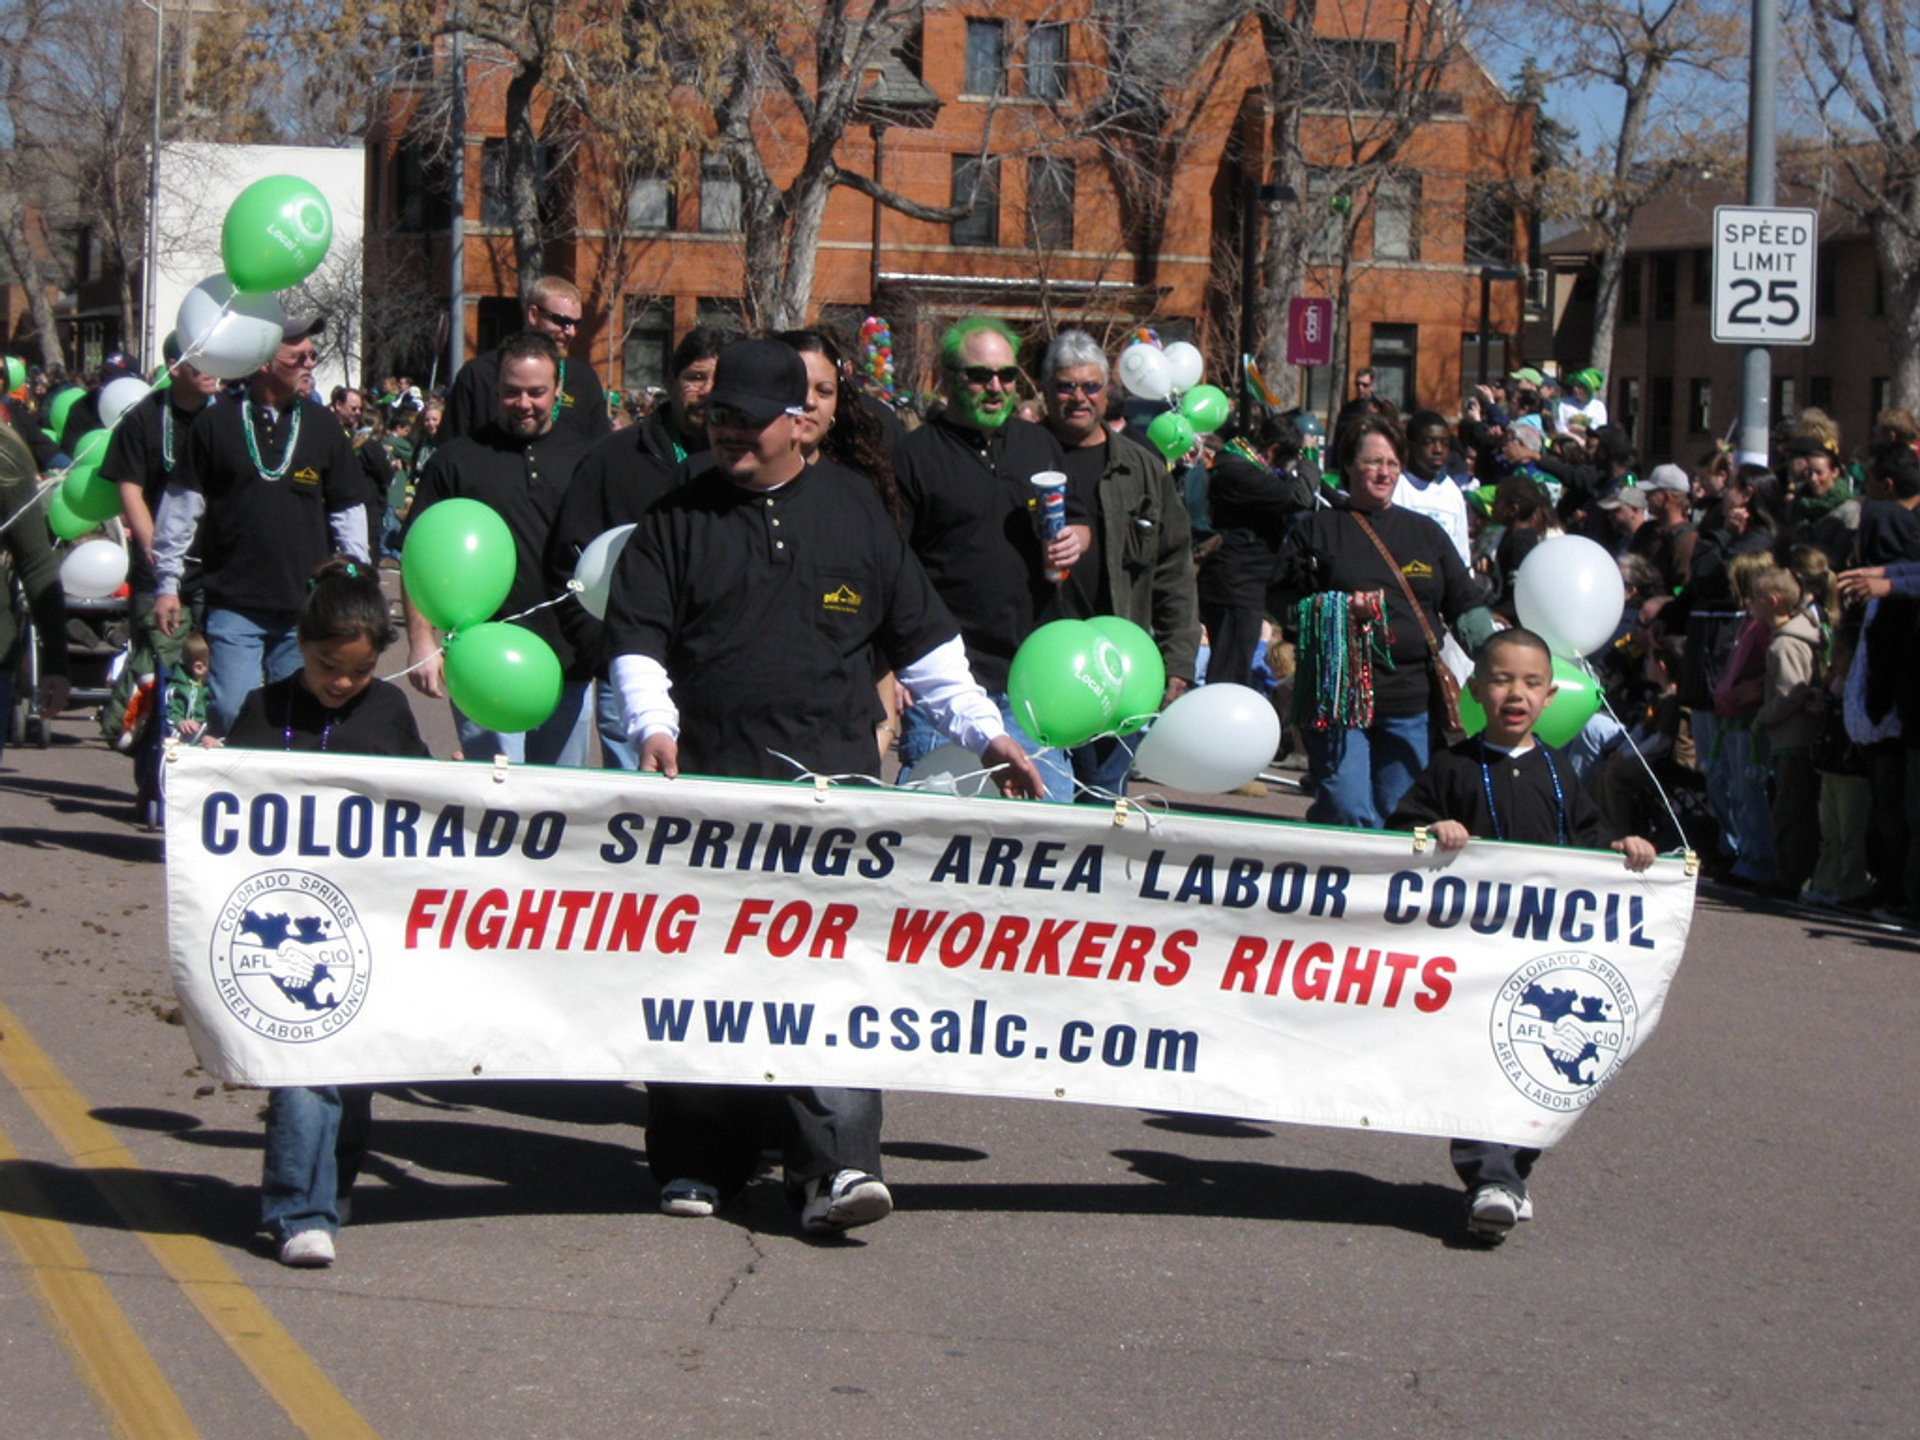 Colorado Springs St. Patrick's Day Parade in Colorado - Best Season 2020